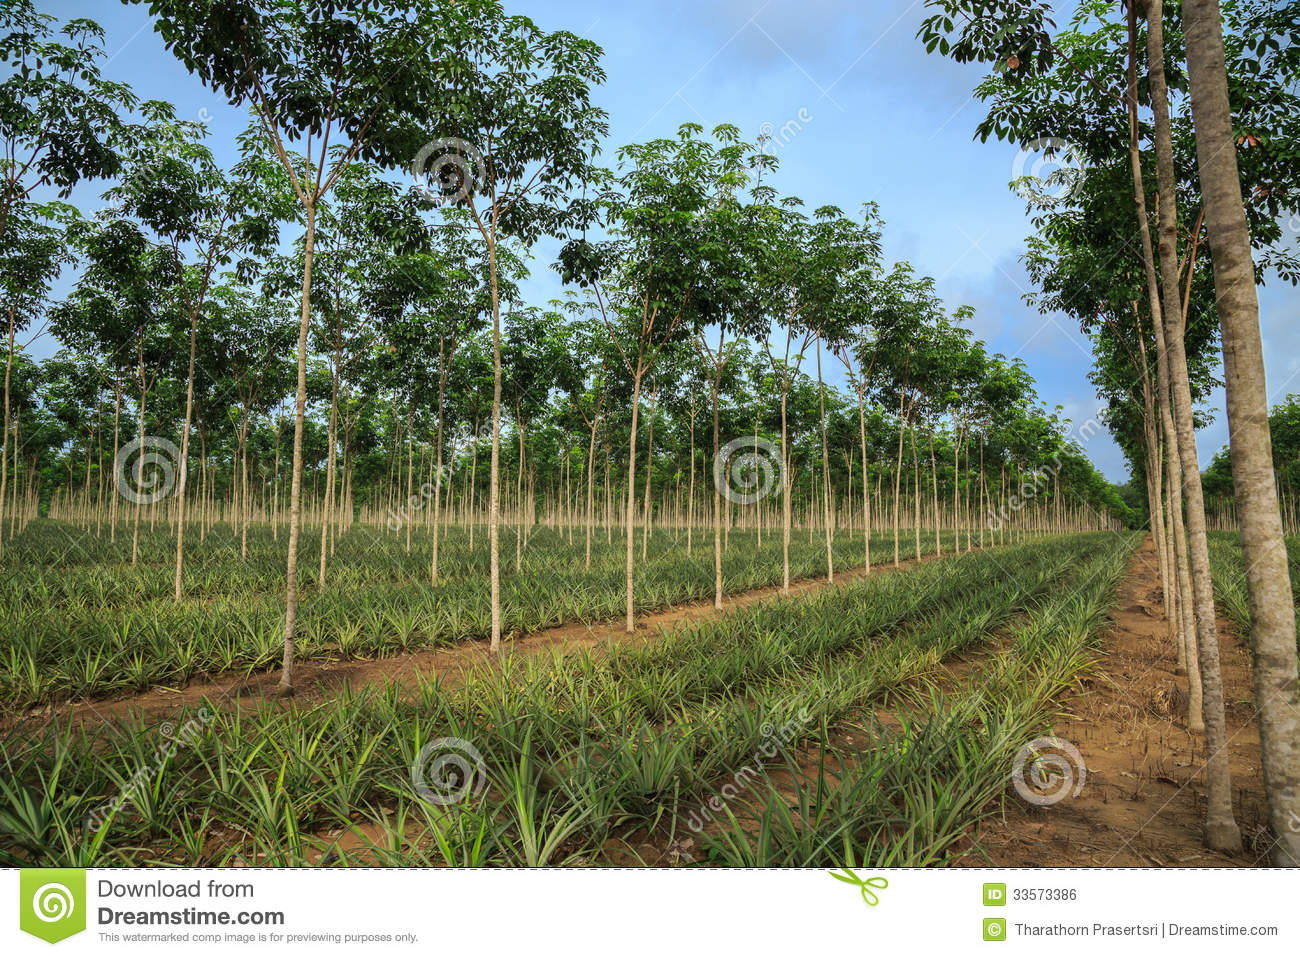 Pineapple And Rubber Tree Plantation Royalty Free Stock